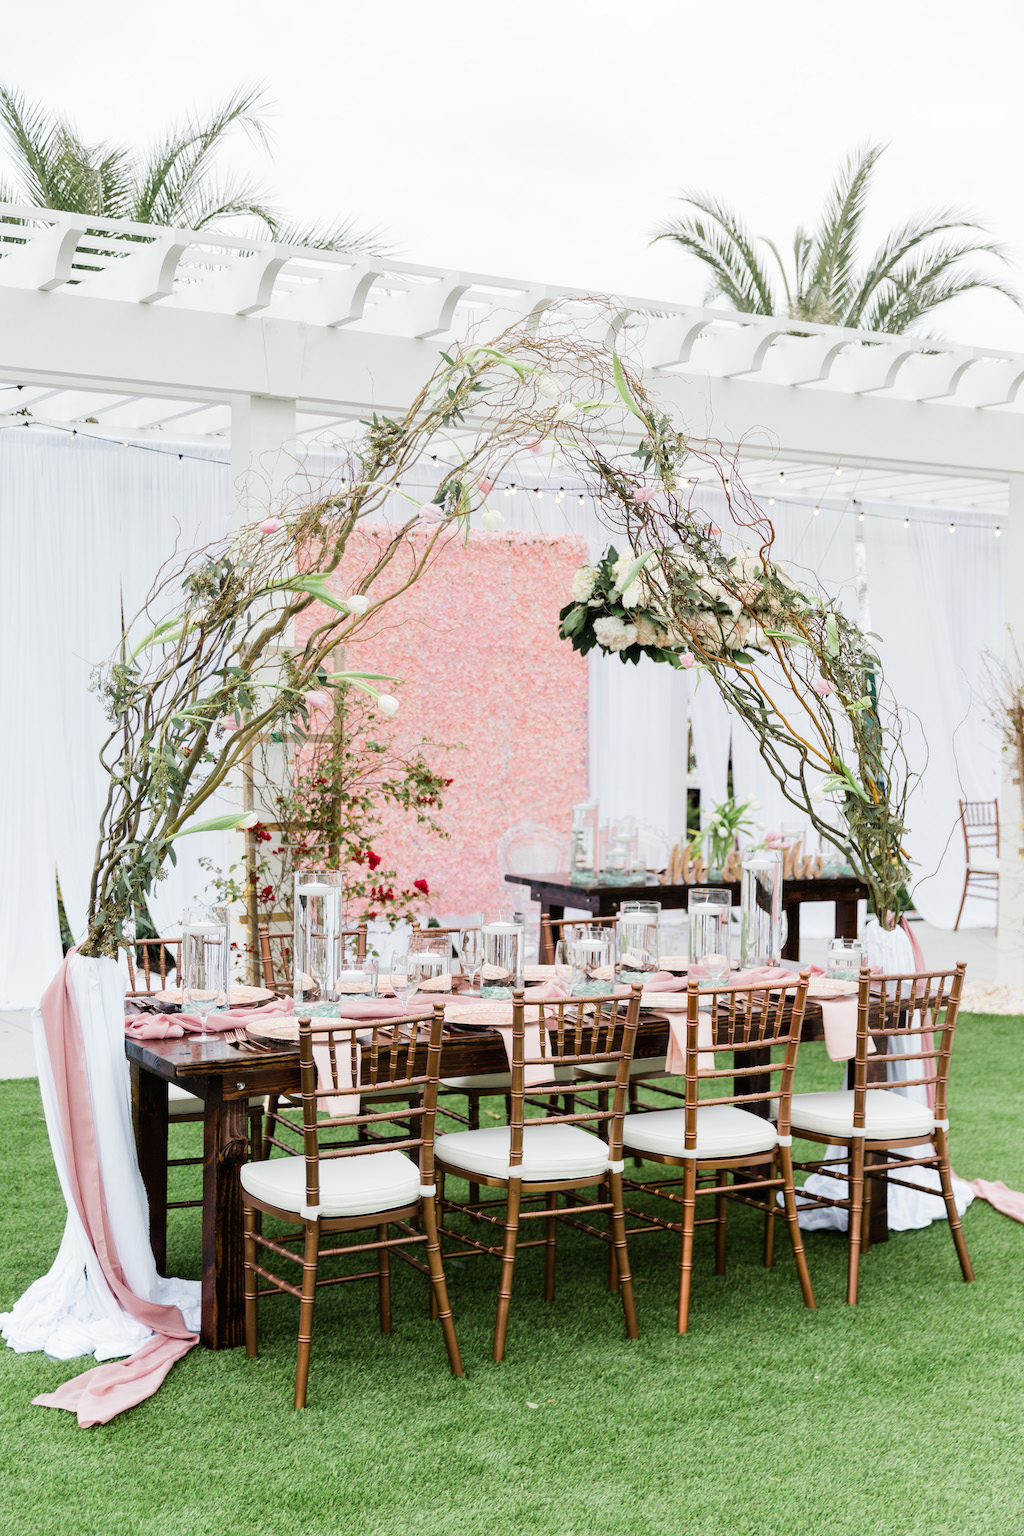 Modern Florida Bride Whimsical Garden Wedding Decor and Reception under Gazebo, Pink Floral Boxwood Wall, White Draping, Hanging Floral Arrangement, Long Feasting Tables. Rose Gold Chiavari Chairs, Floral Curly Willow Arches,   Tampa Bay Wedding Planner Special Moments Event Planning   Tampa Bay Wedding Florist Gabro Event Services   Tampa Bay Wedding Rentals A Chair Affair Wall, White Draping, Hanging Floral Arrangement, Long Feasting Tables. Rose Gold Chiavari Chairs, Floral Curly Willow Arches, Sweetheart Table with Ghost Acrylic Chairs, Outdoor Dance floor   Tampa Bay Wedding Planner Special Moments Event Planning   Tampa Bay Wedding Florist Gabro Event Services   Tampa Bay Wedding Rentals A Chair Affair   Tampa Bay Hair and Makeup Artists Femme Akoi   Tampa Bay Couture Wedding Dress Boutique Isabel O'Neil Bridal Collection  